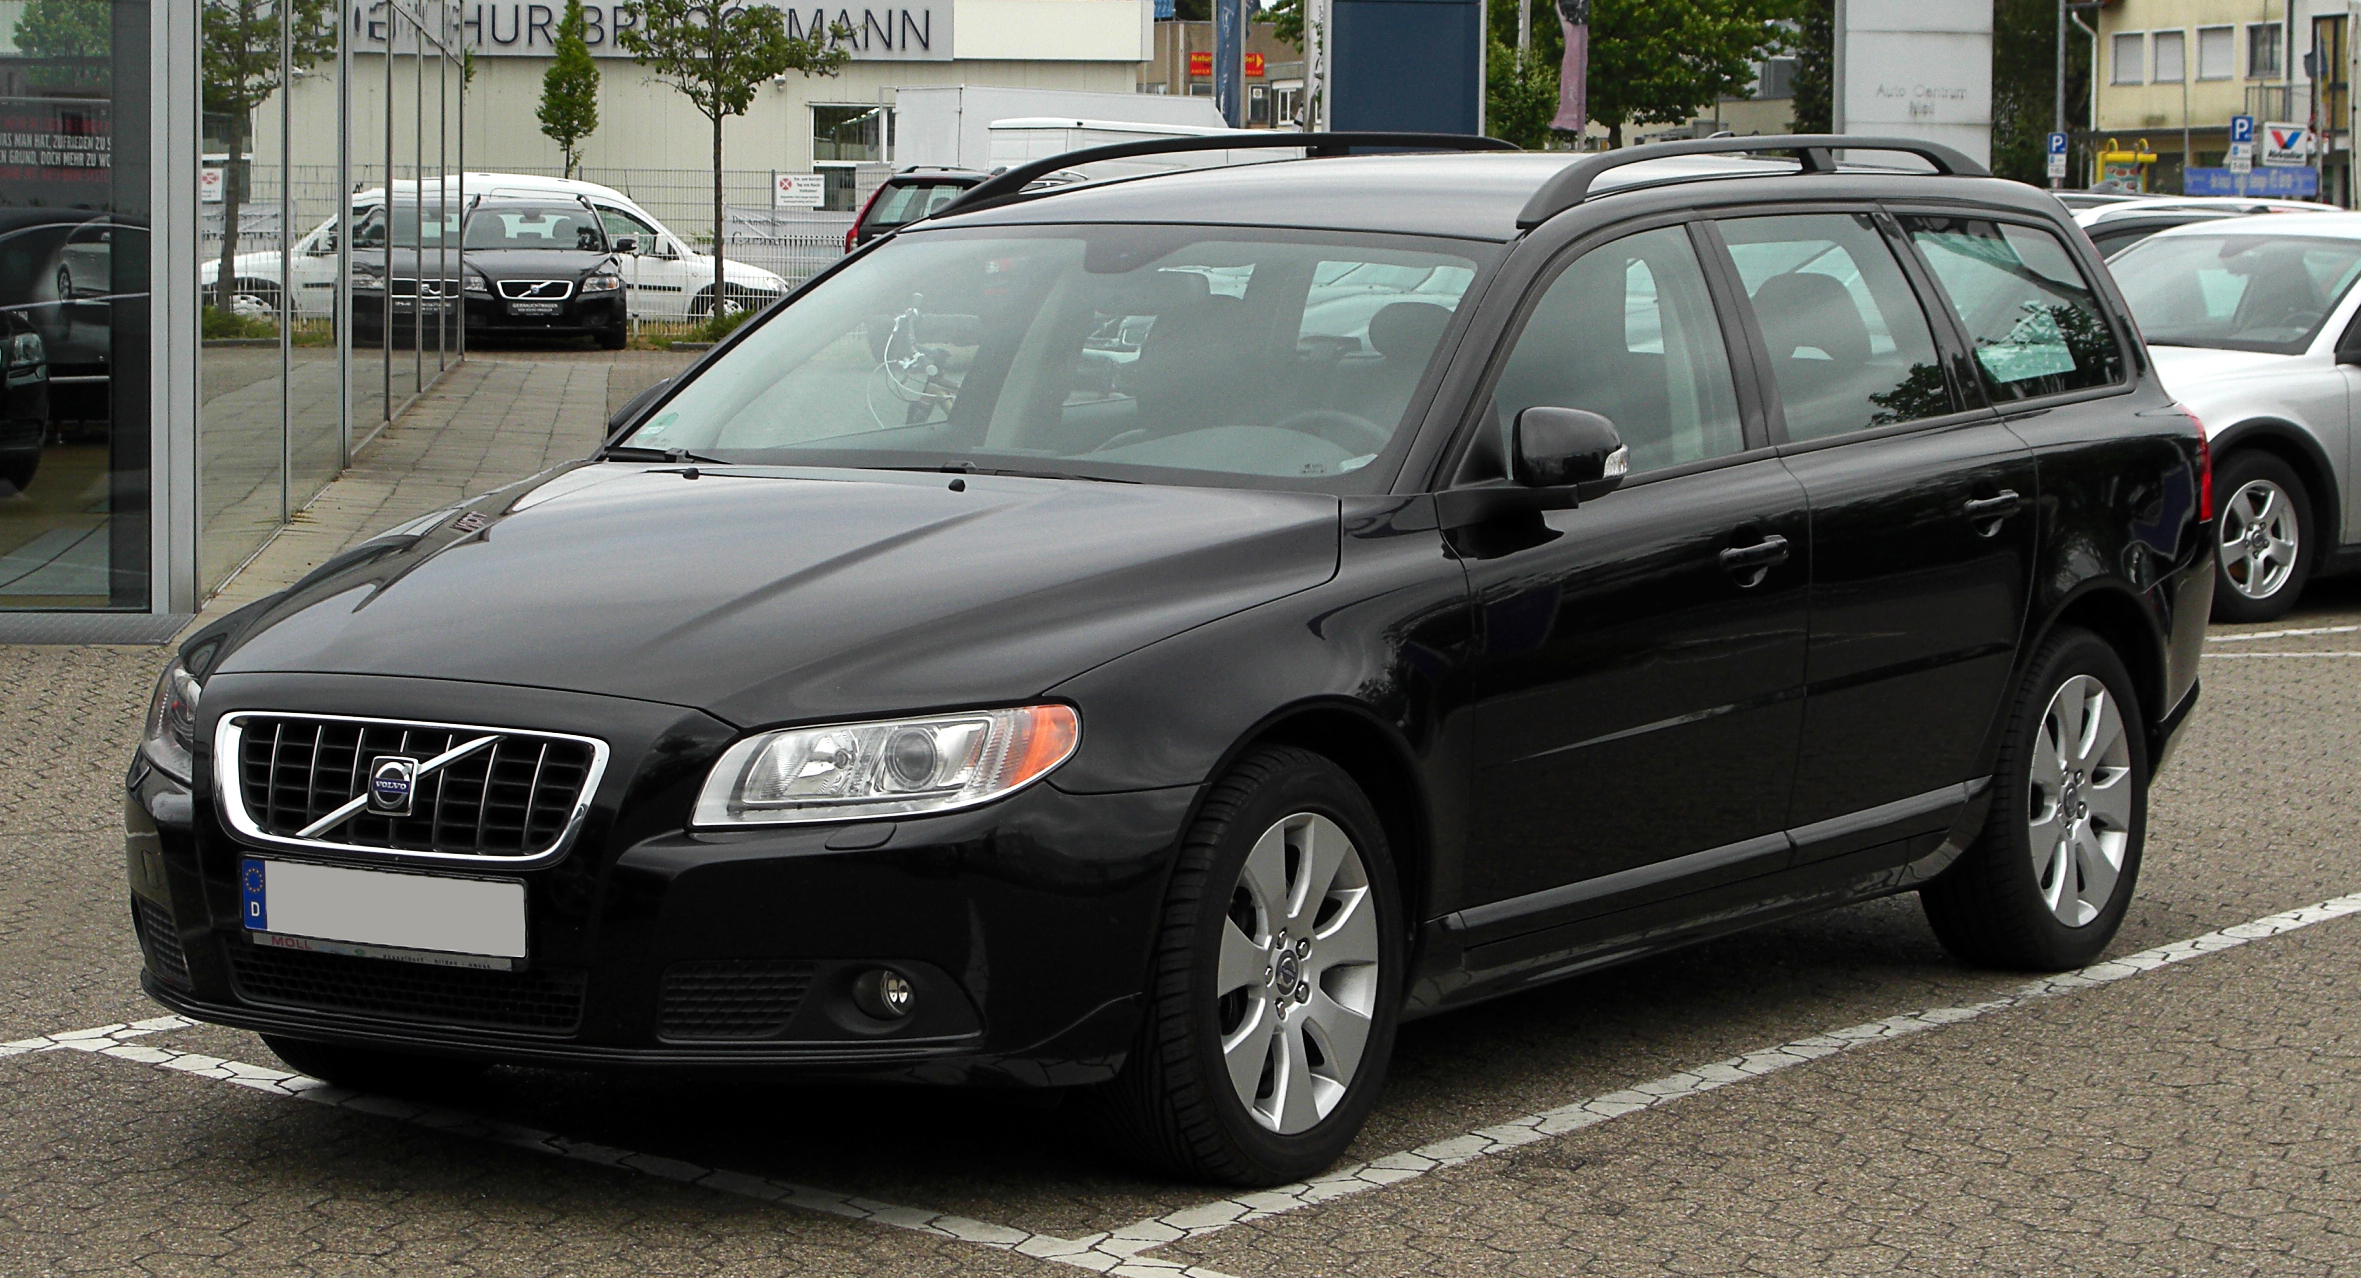 volvo v70 engine 2004 d5 diagram specs price release date redesign. Black Bedroom Furniture Sets. Home Design Ideas